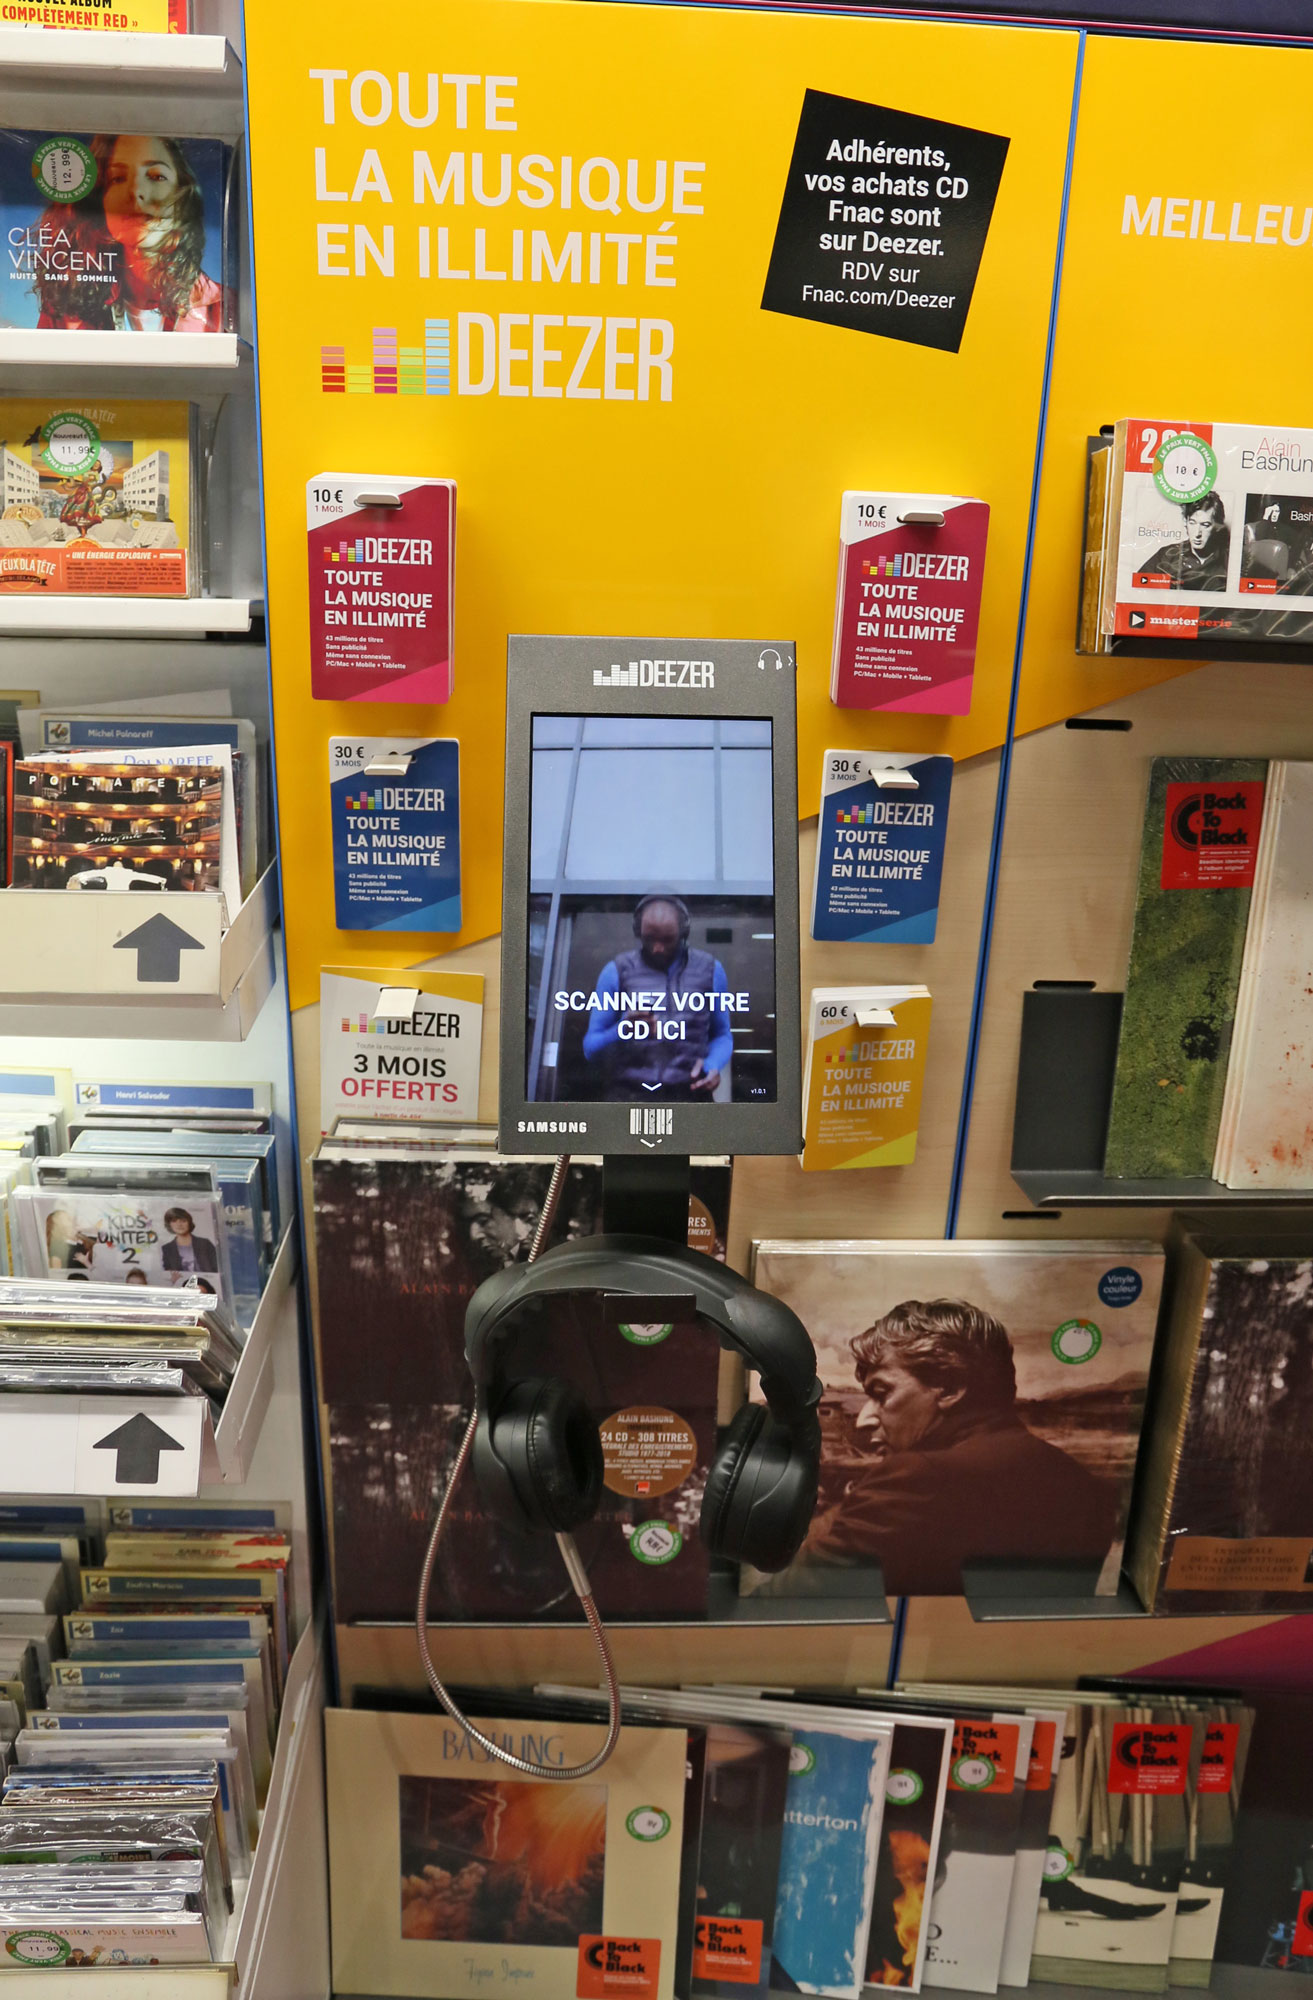 Deezer station in situation